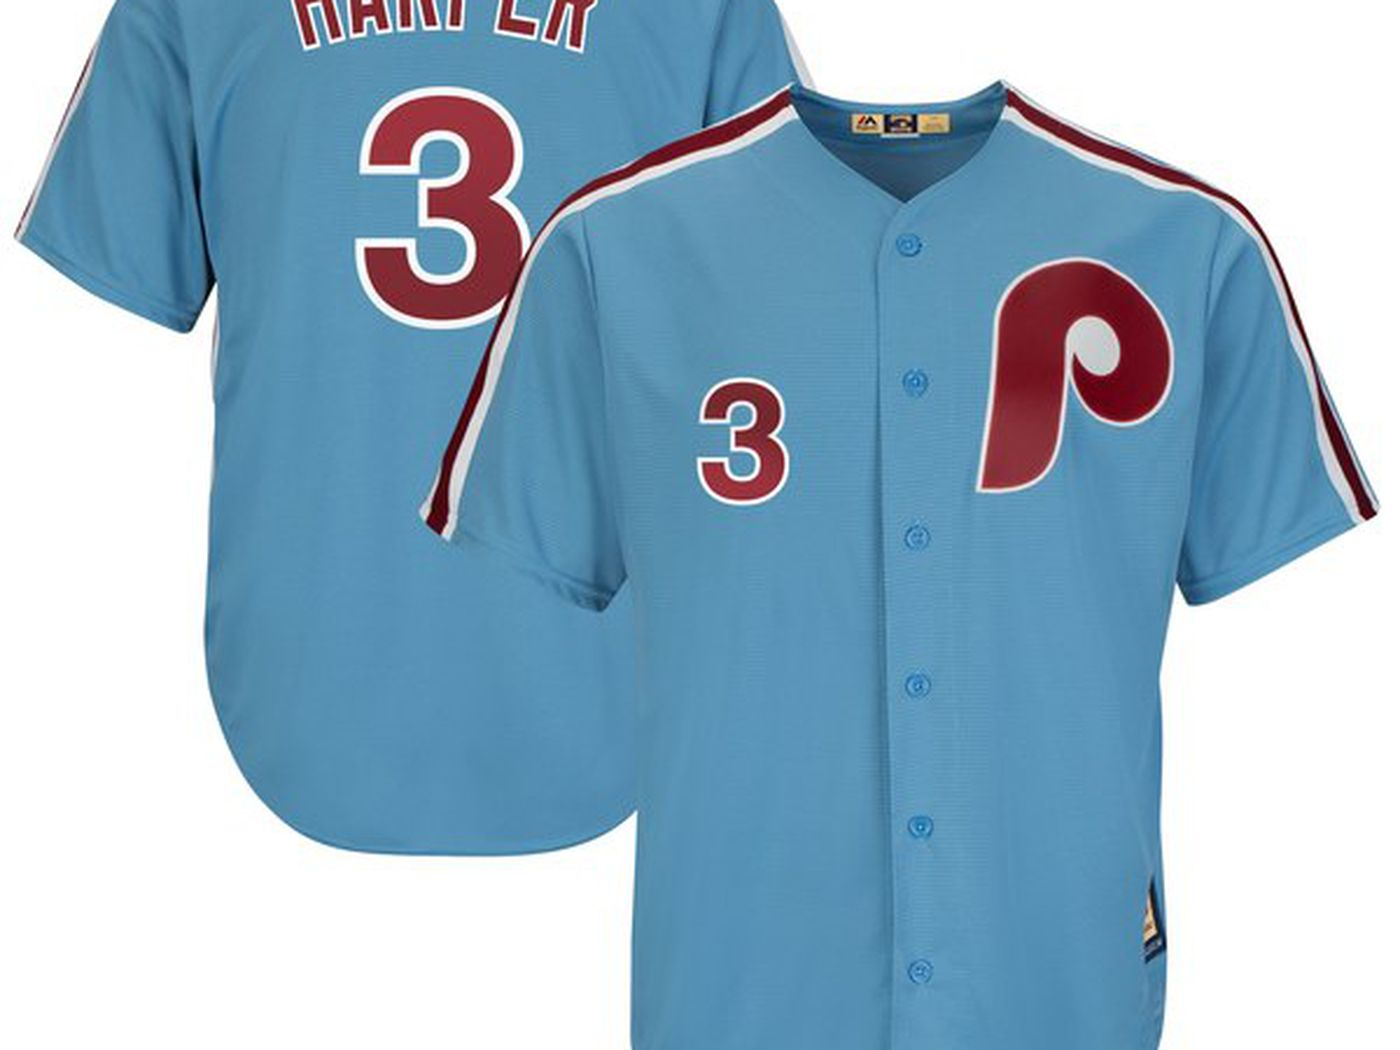 7264e8313 The Bryce Harper Phillies jerseys and T-shirts have dropped online -  SBNation.com